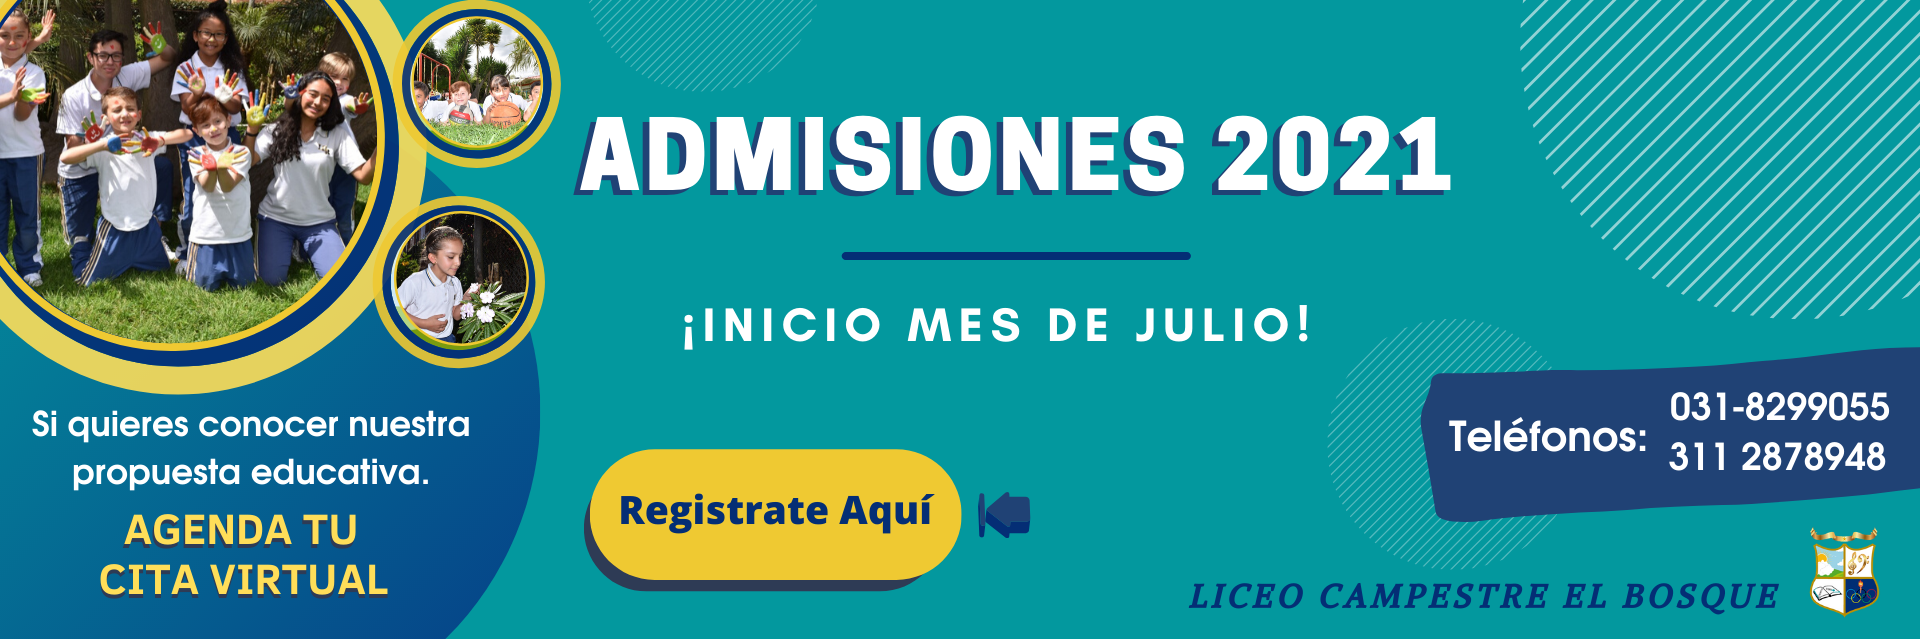 Flayer_admisiones_liceo_1920_639